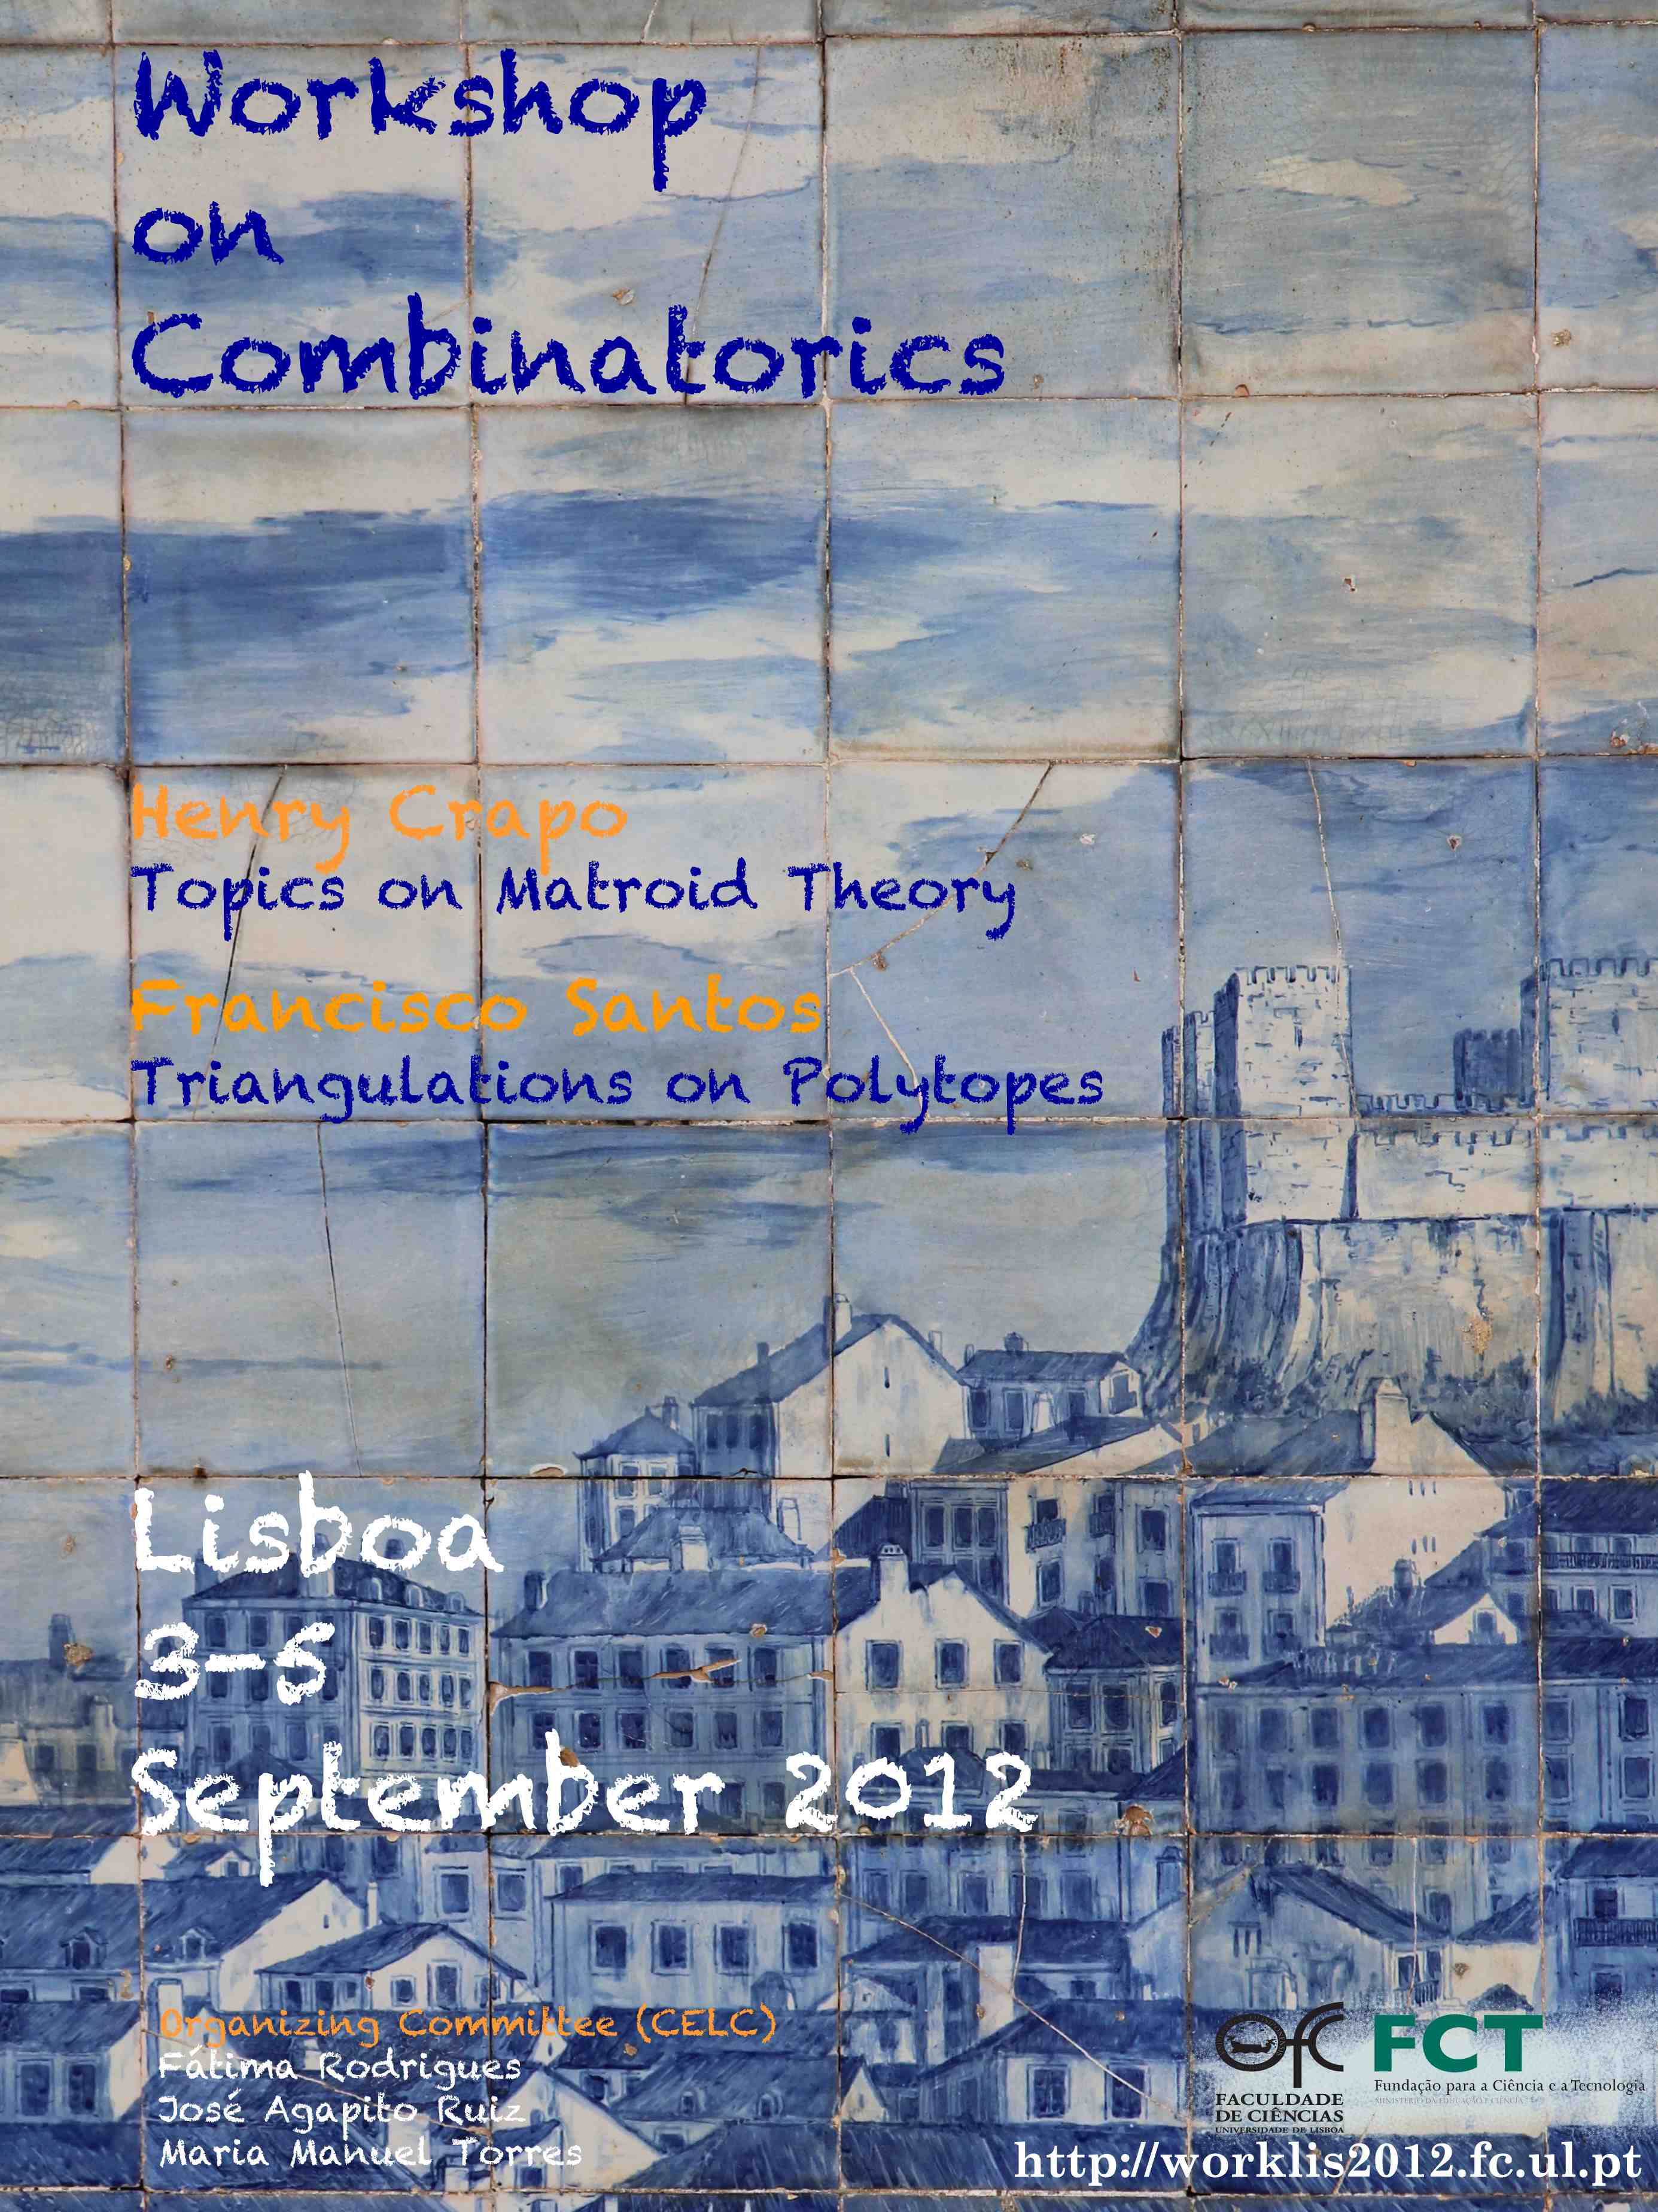 [Poster] Workshop on Combinatorics